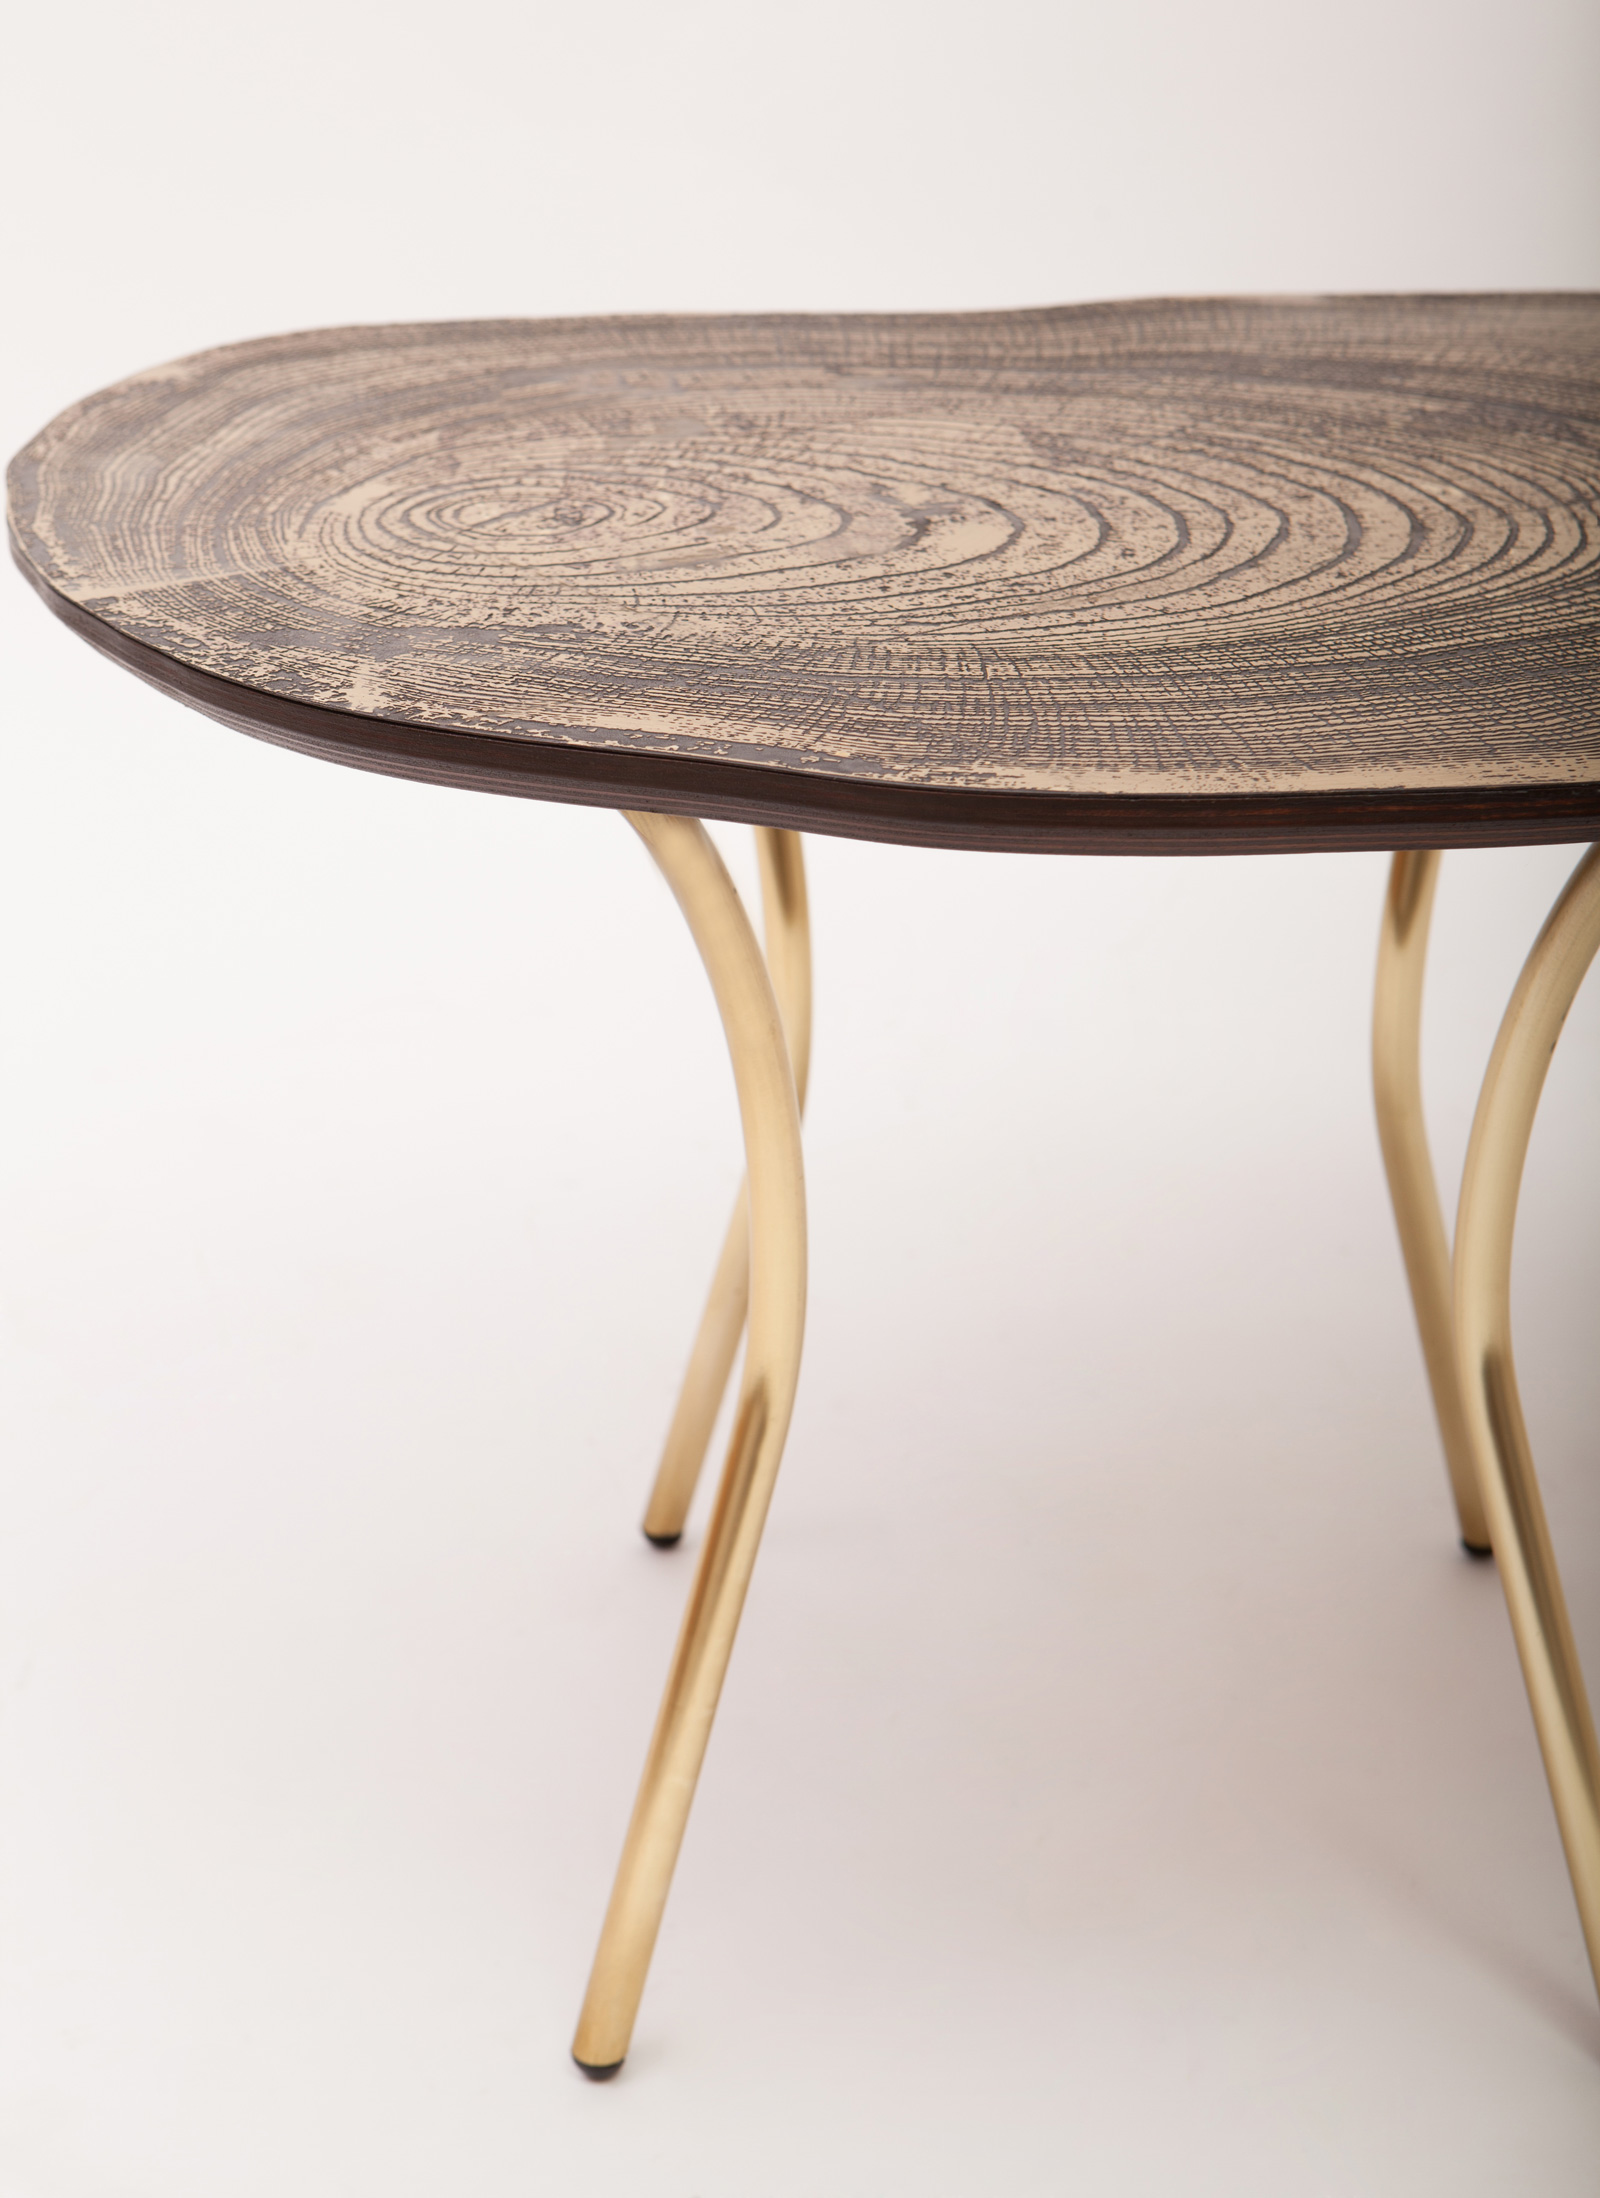 Lean Coffee Table / Sharon Sides